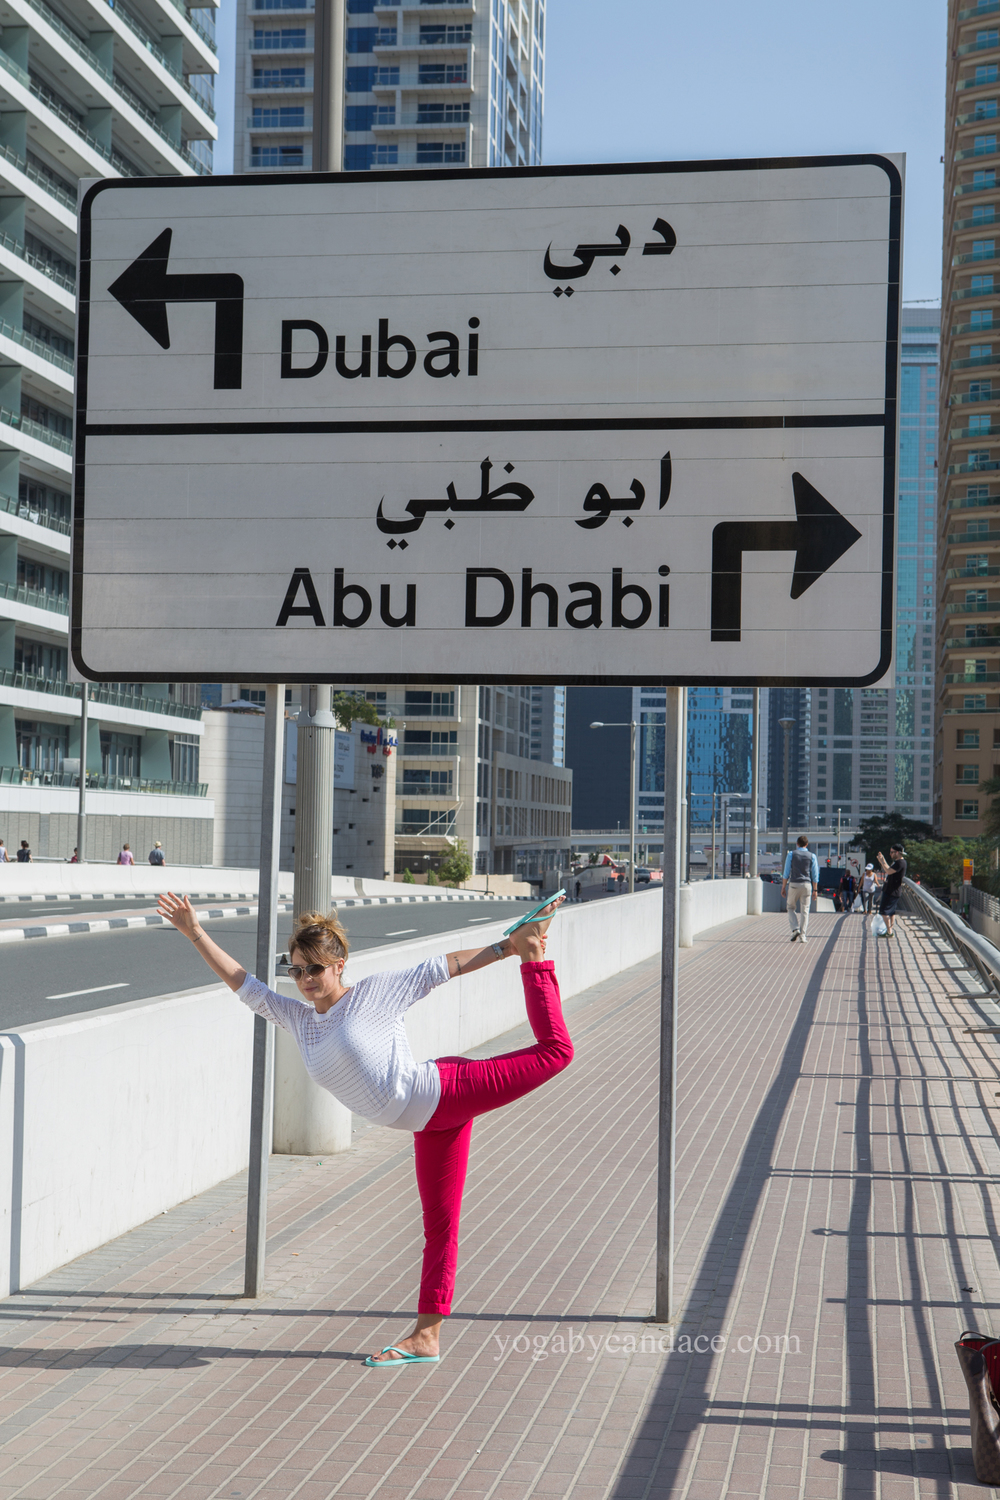 Yoga in Dubai Wearing: sunglasses, j brand pants, hard tail top (diff color).